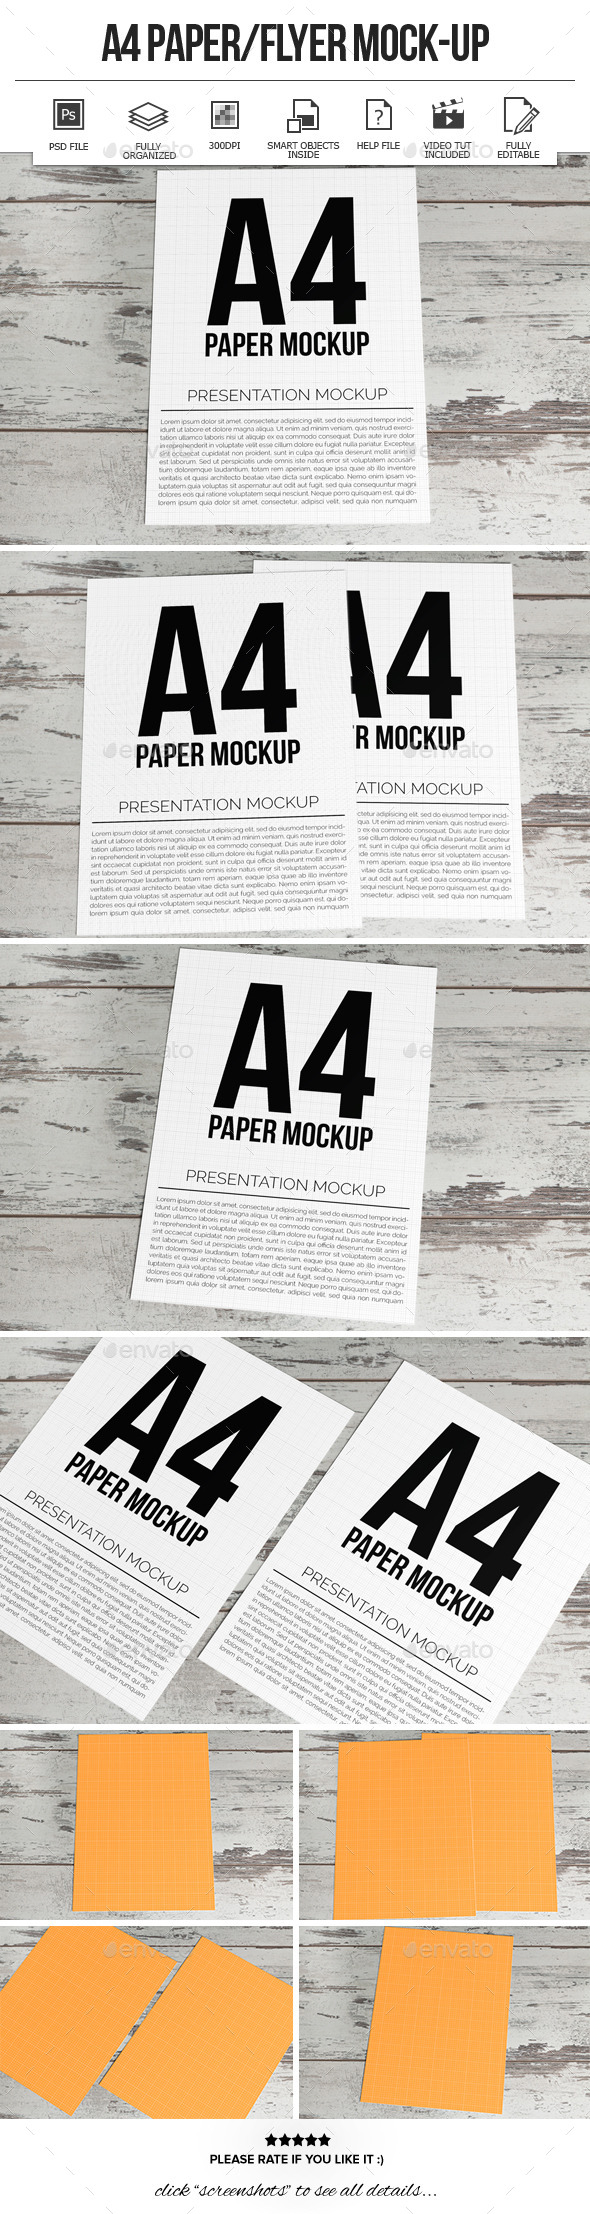 GraphicRiver A4 Paper Flyer Mock-Ups 10350975